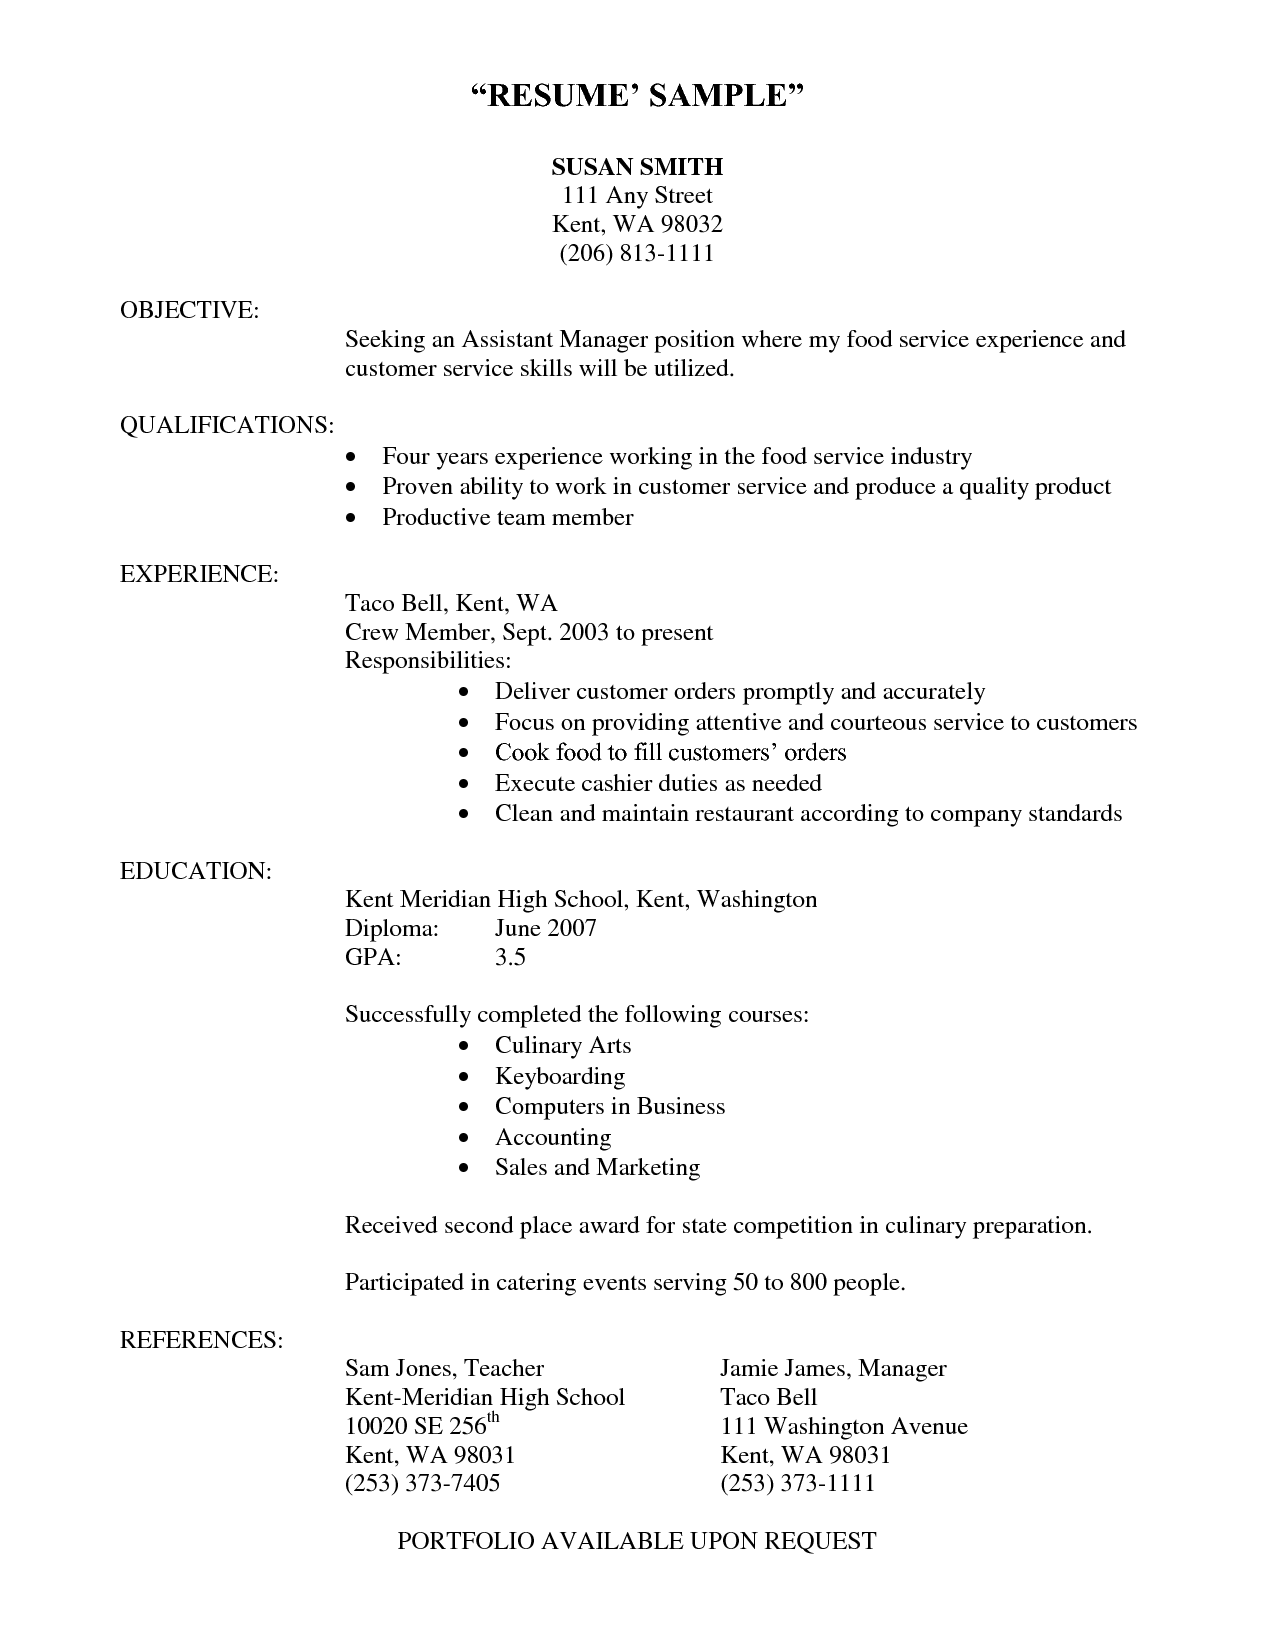 example qualifications resume homeschool teacher sample skill cover letter  warehouse skills